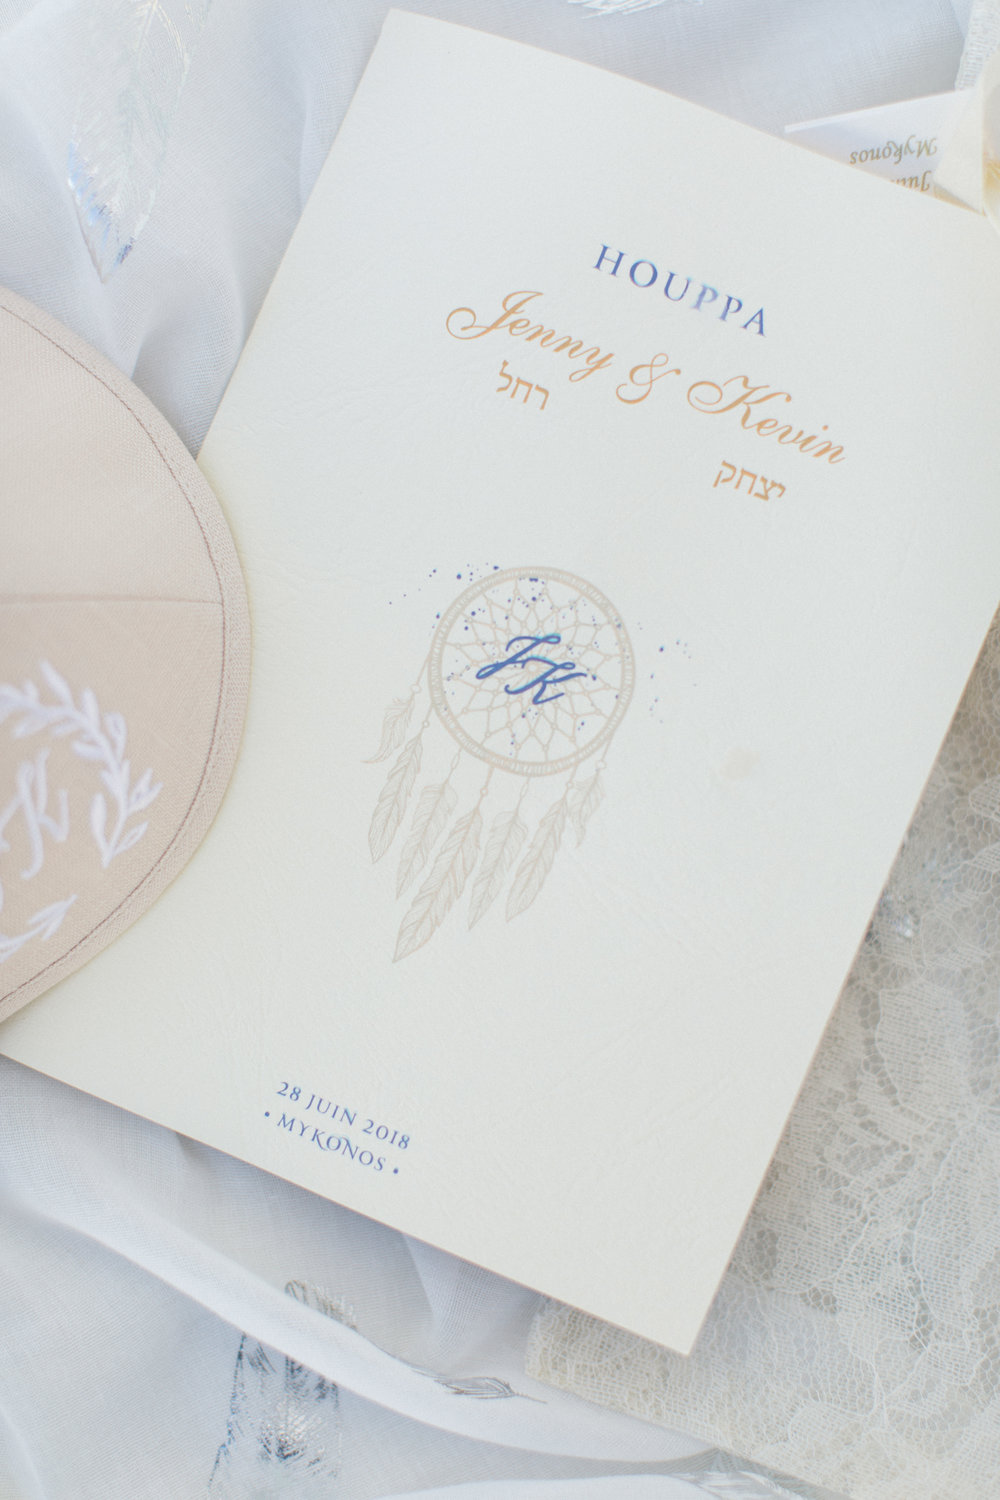 chuppah-chuppa-huppah-houppa-ceremony-booklet-Rabin-bridal-canopy-jewish-ceremony-kippah-hat-monograms-stationery-wedding-logo-bride-groom-event-planning-silkentile-greece